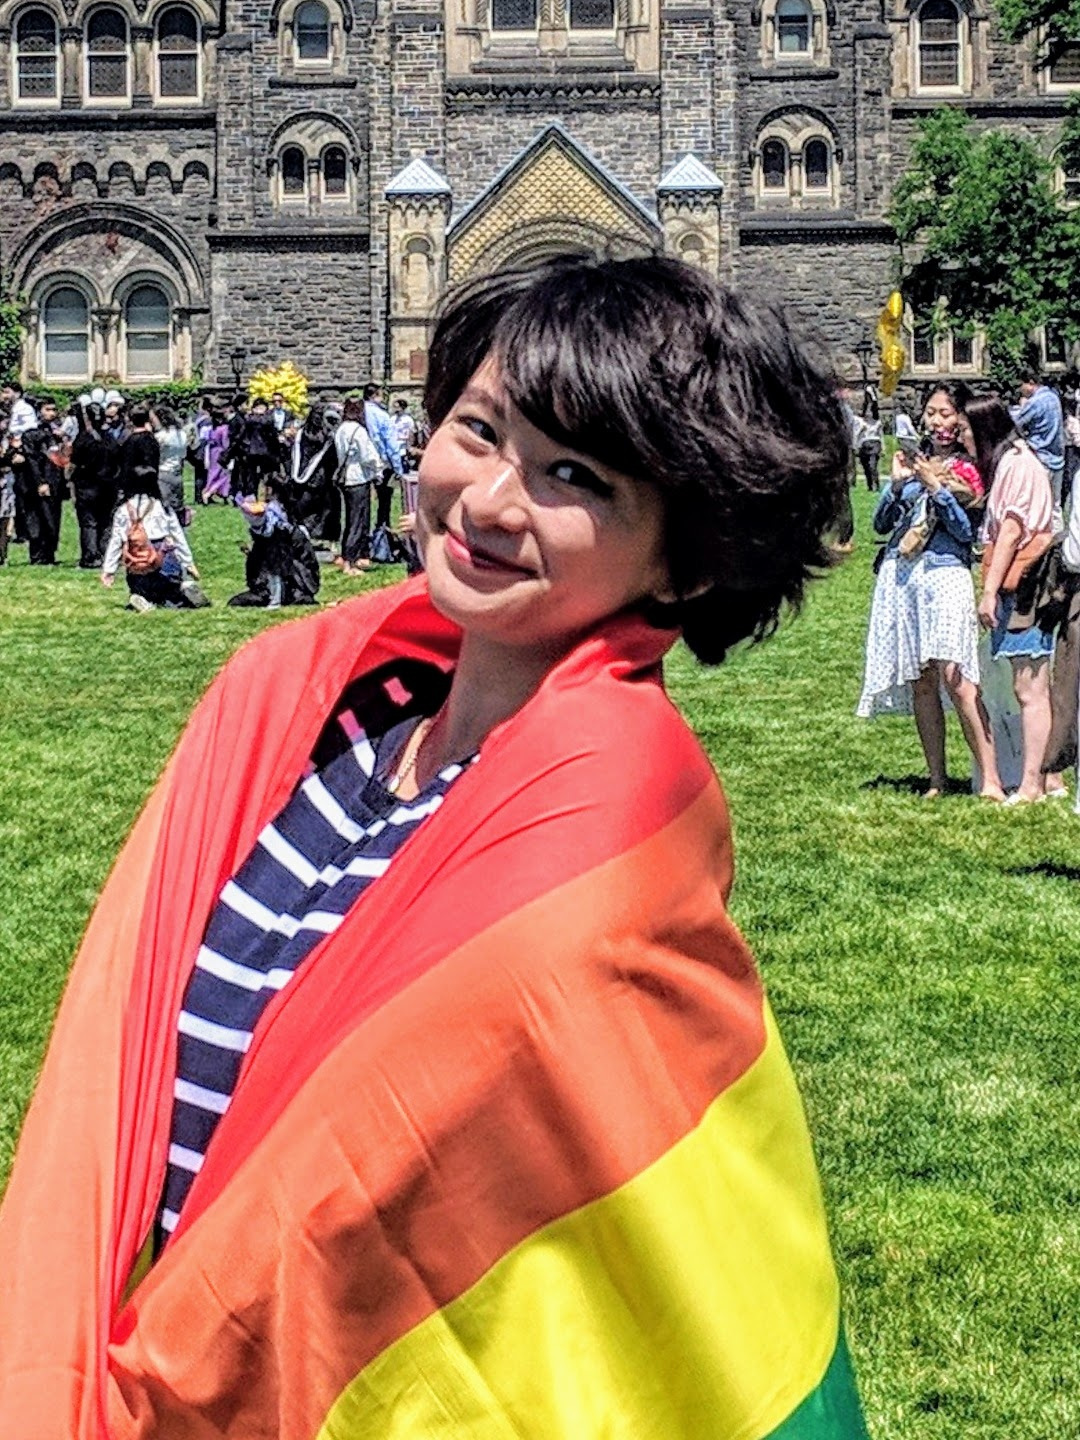 Image Description: A young smiling non-binary East Asian person with medium-length black hair, wrapped in a rainbow pride flag, on a lawn with lots of other people, in front of what looks like a castle .